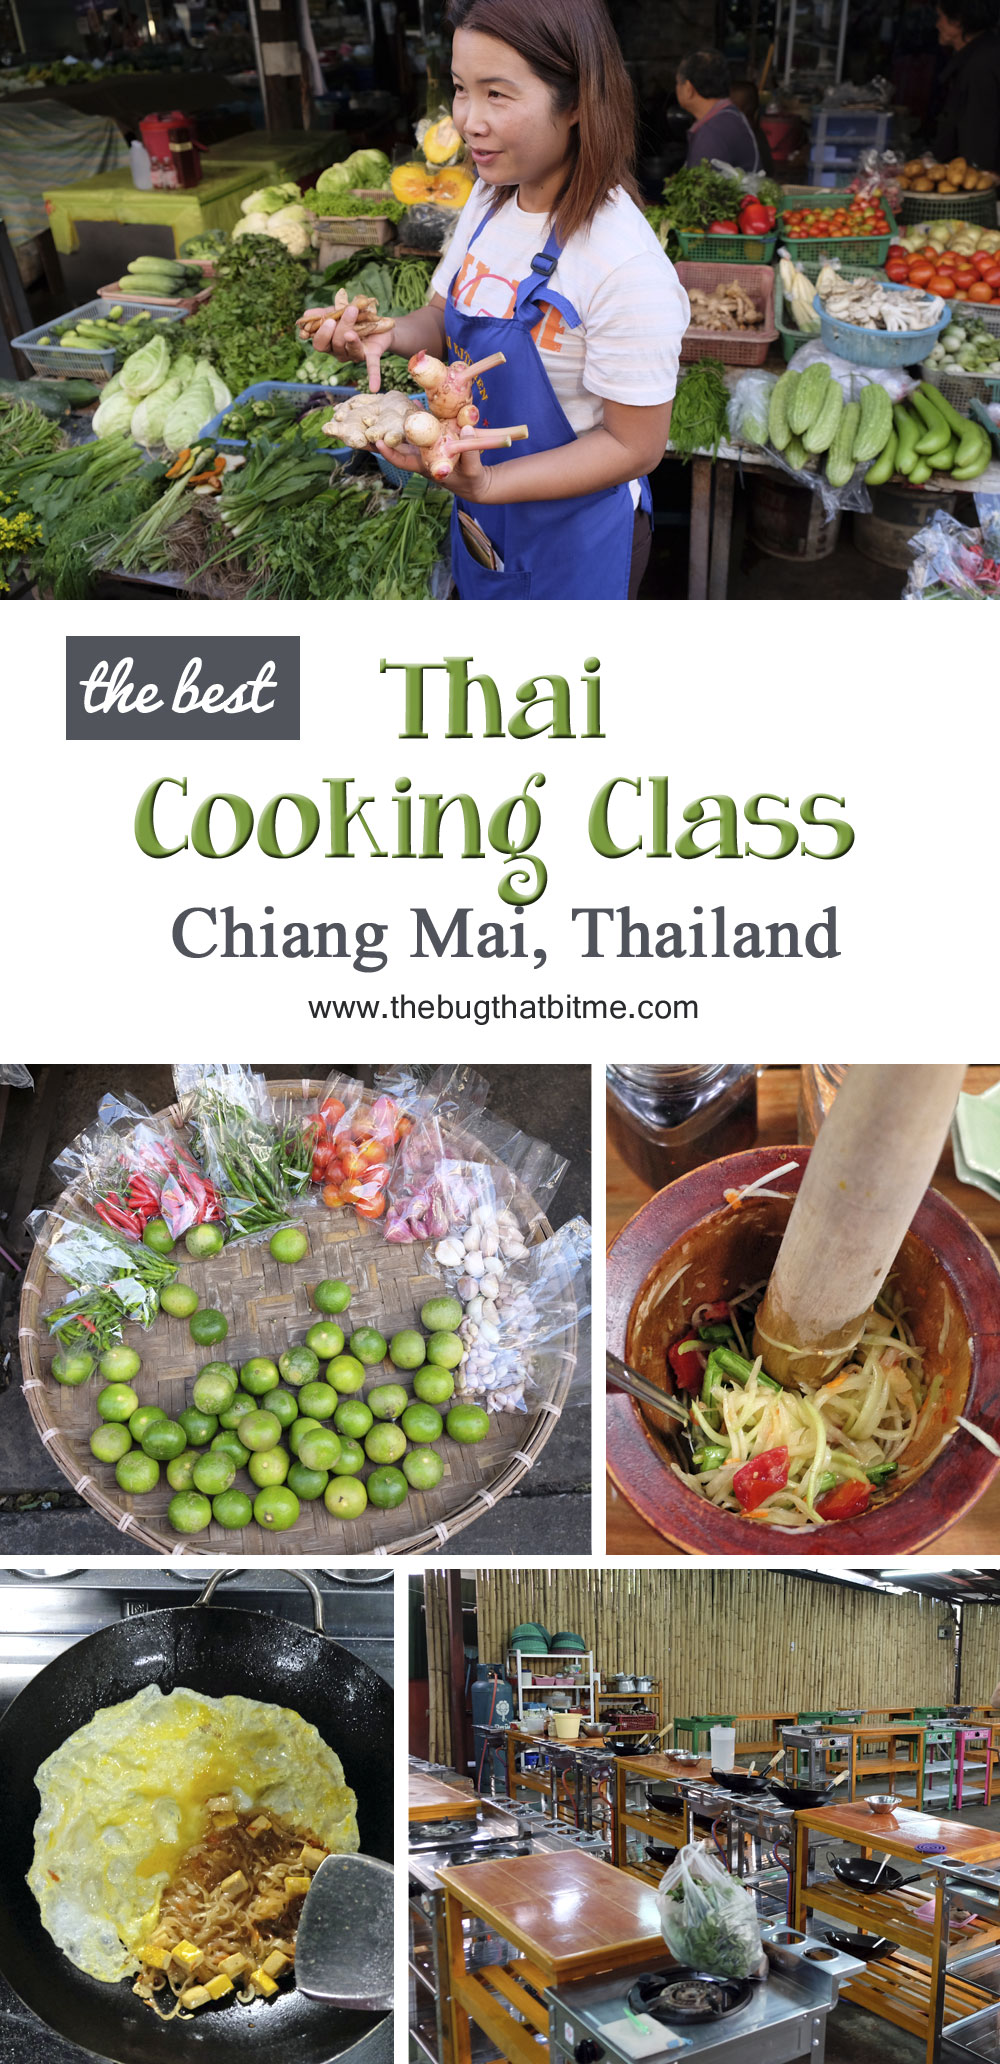 The best Thai Cooking Class in Chiang Mai, Thailand!